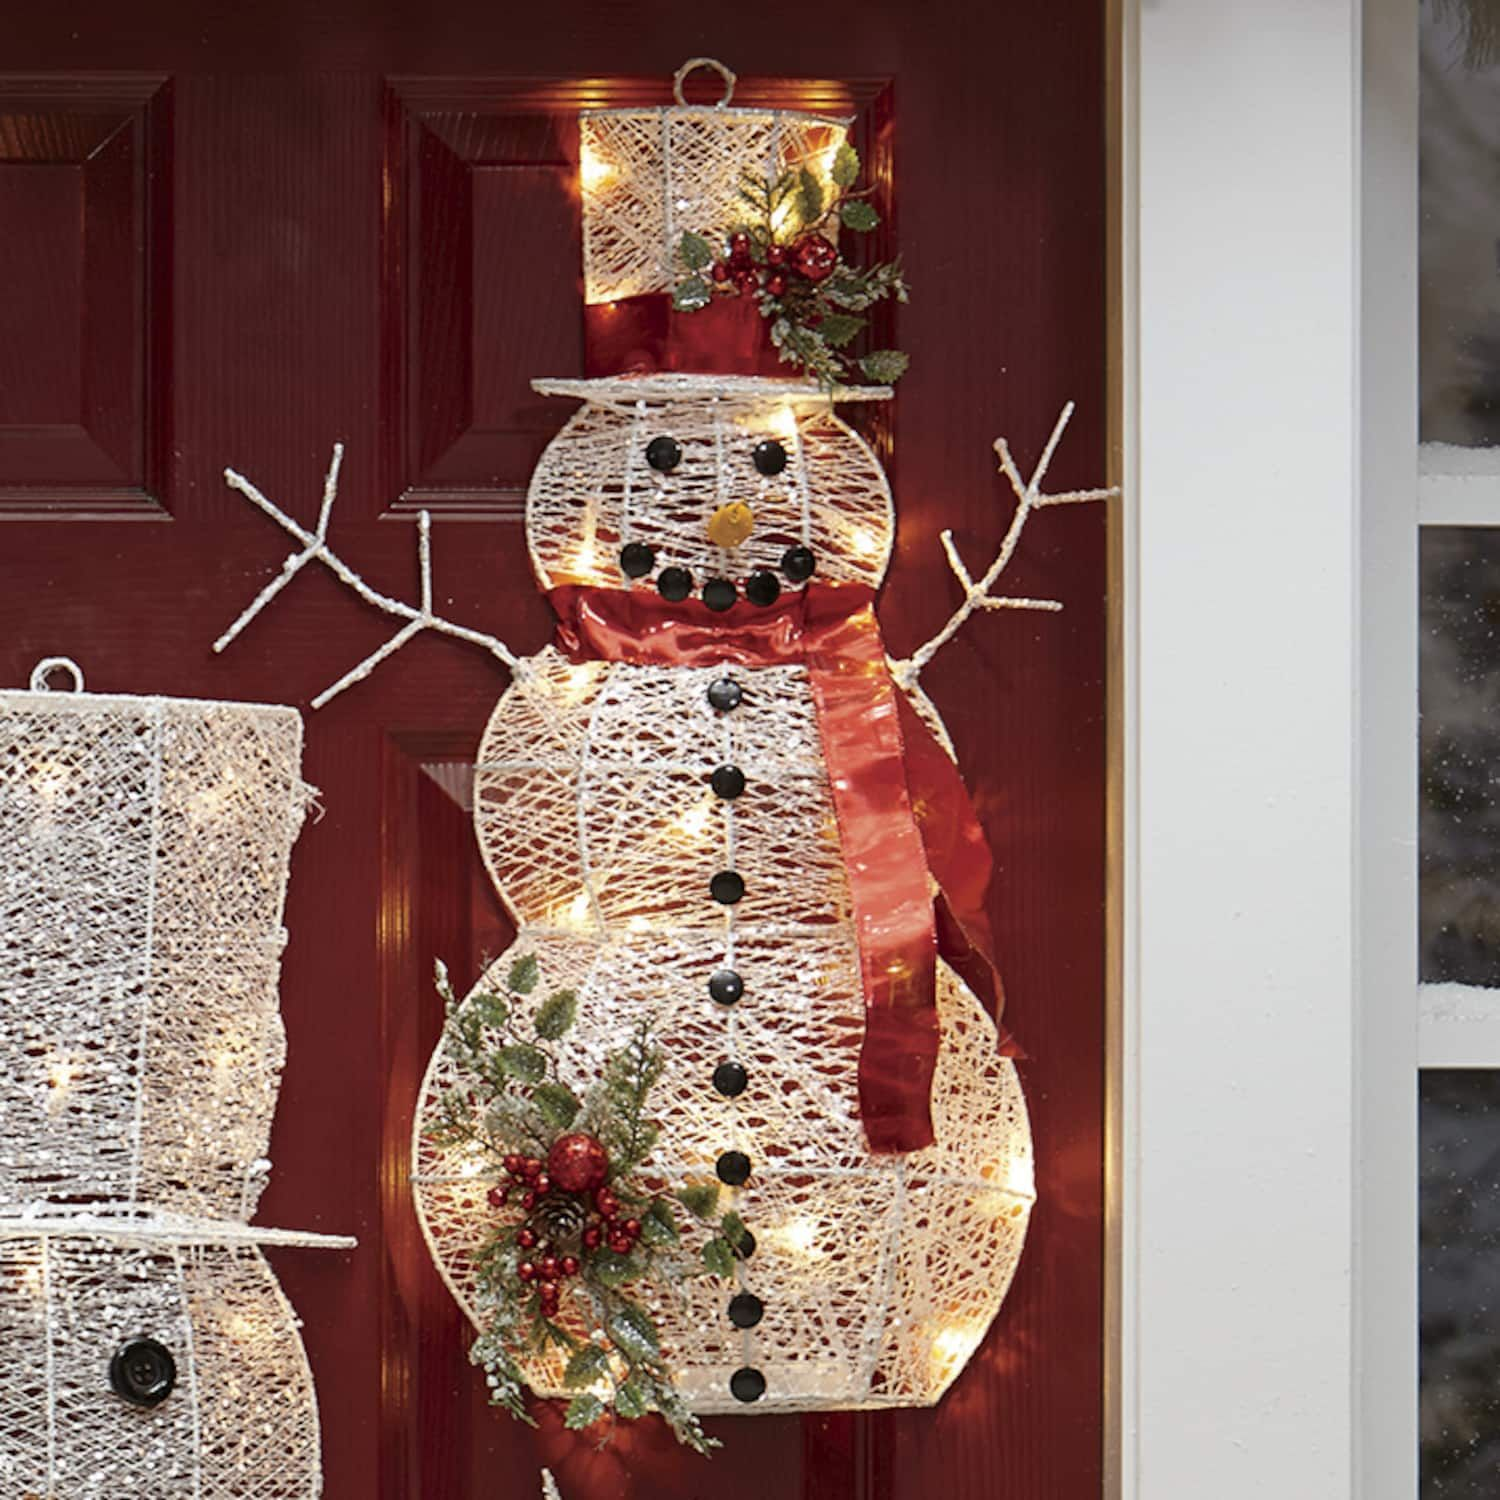 Small Snowman Lit Wall Decor Montgomery Ward Snowman Christmas Decorations Snowman Decorations Snowman Outdoor Decorations